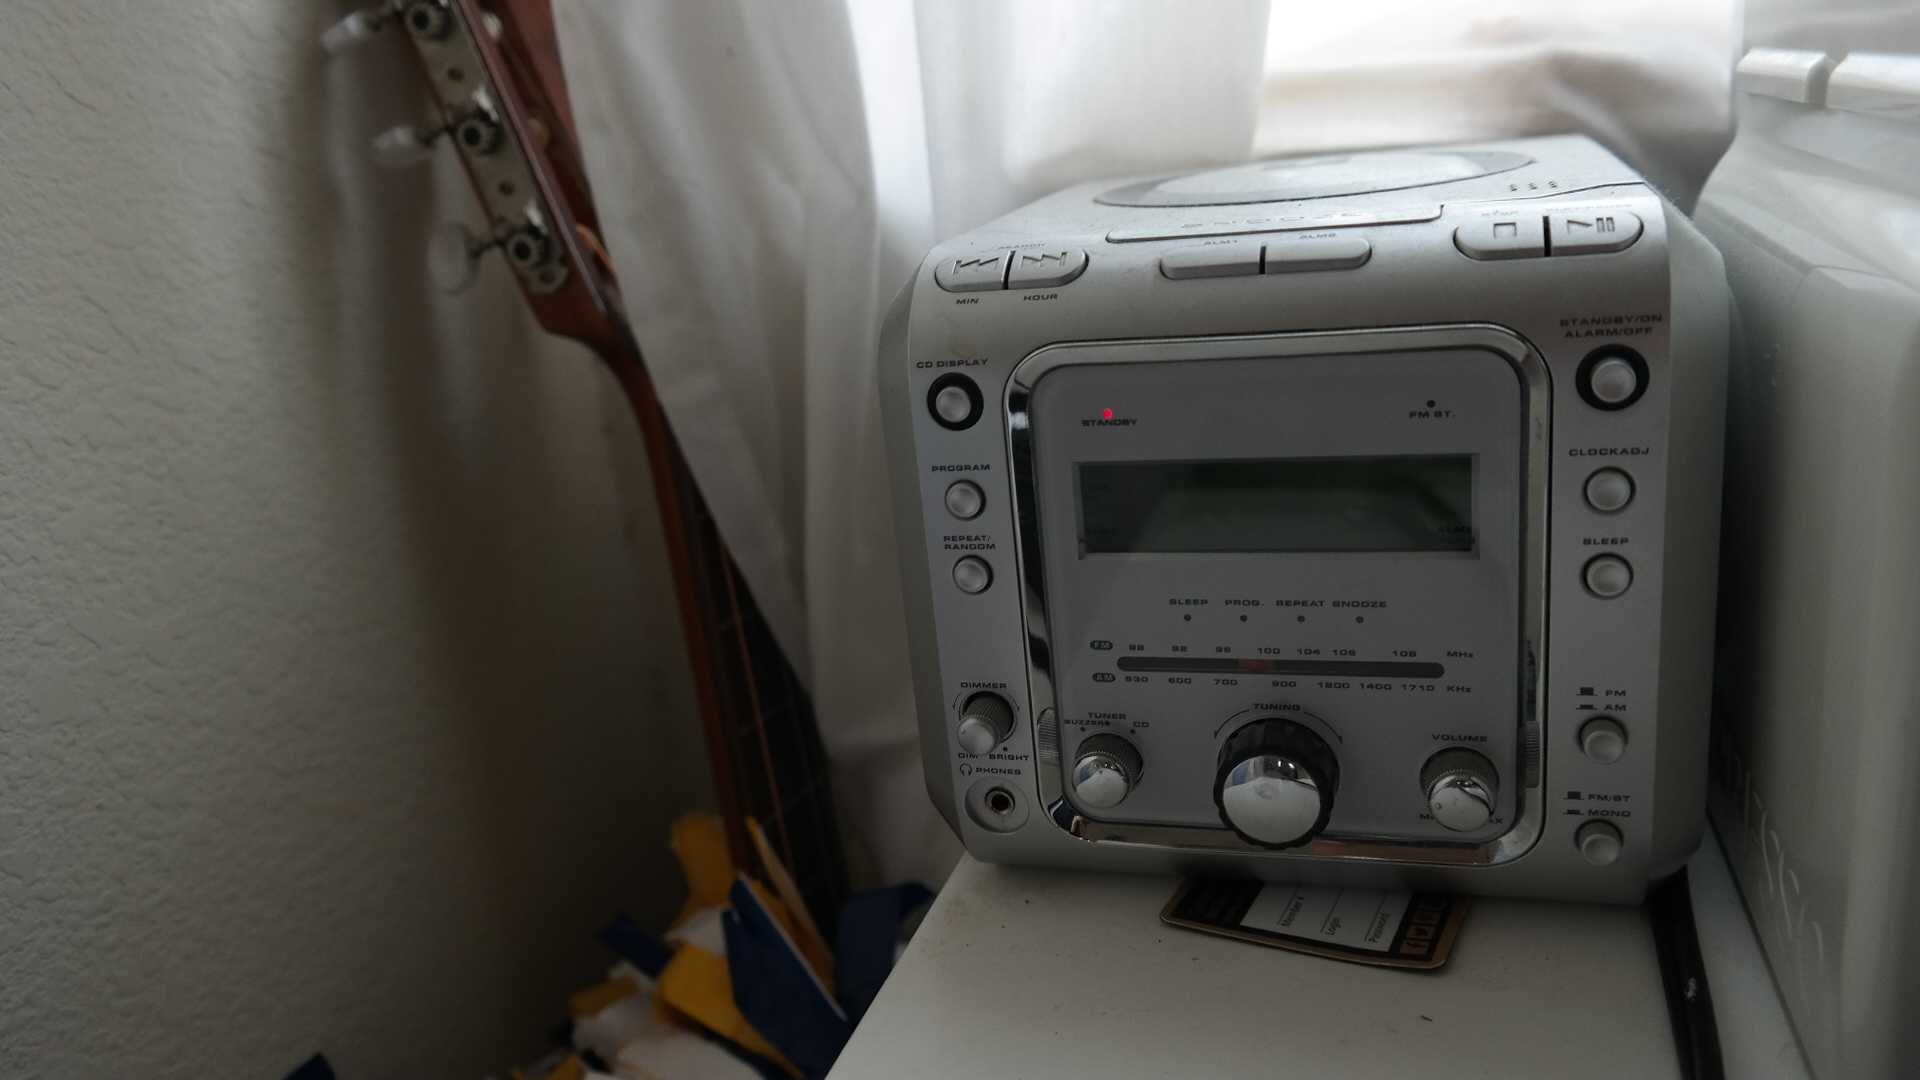 Leung's radio sits adjacent to her Nespresso machine. When her radio isn't on, Leung listens to music on Spotify. Photo by Rhonda Mak.